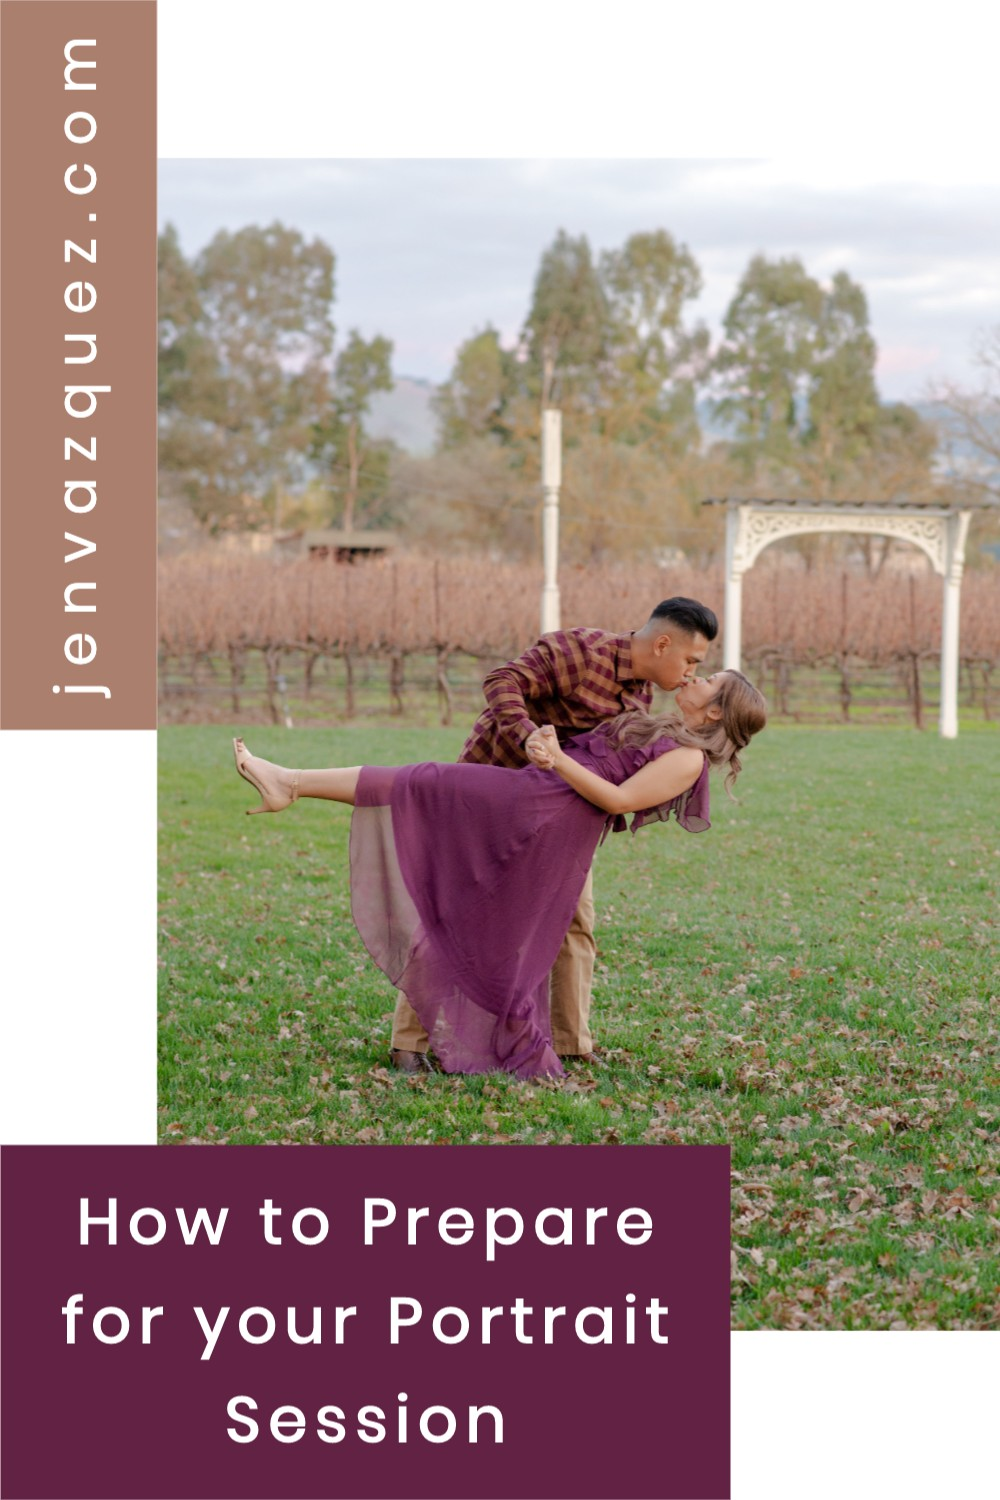 How-to-Prepare-for-your-Portrait-Session 6